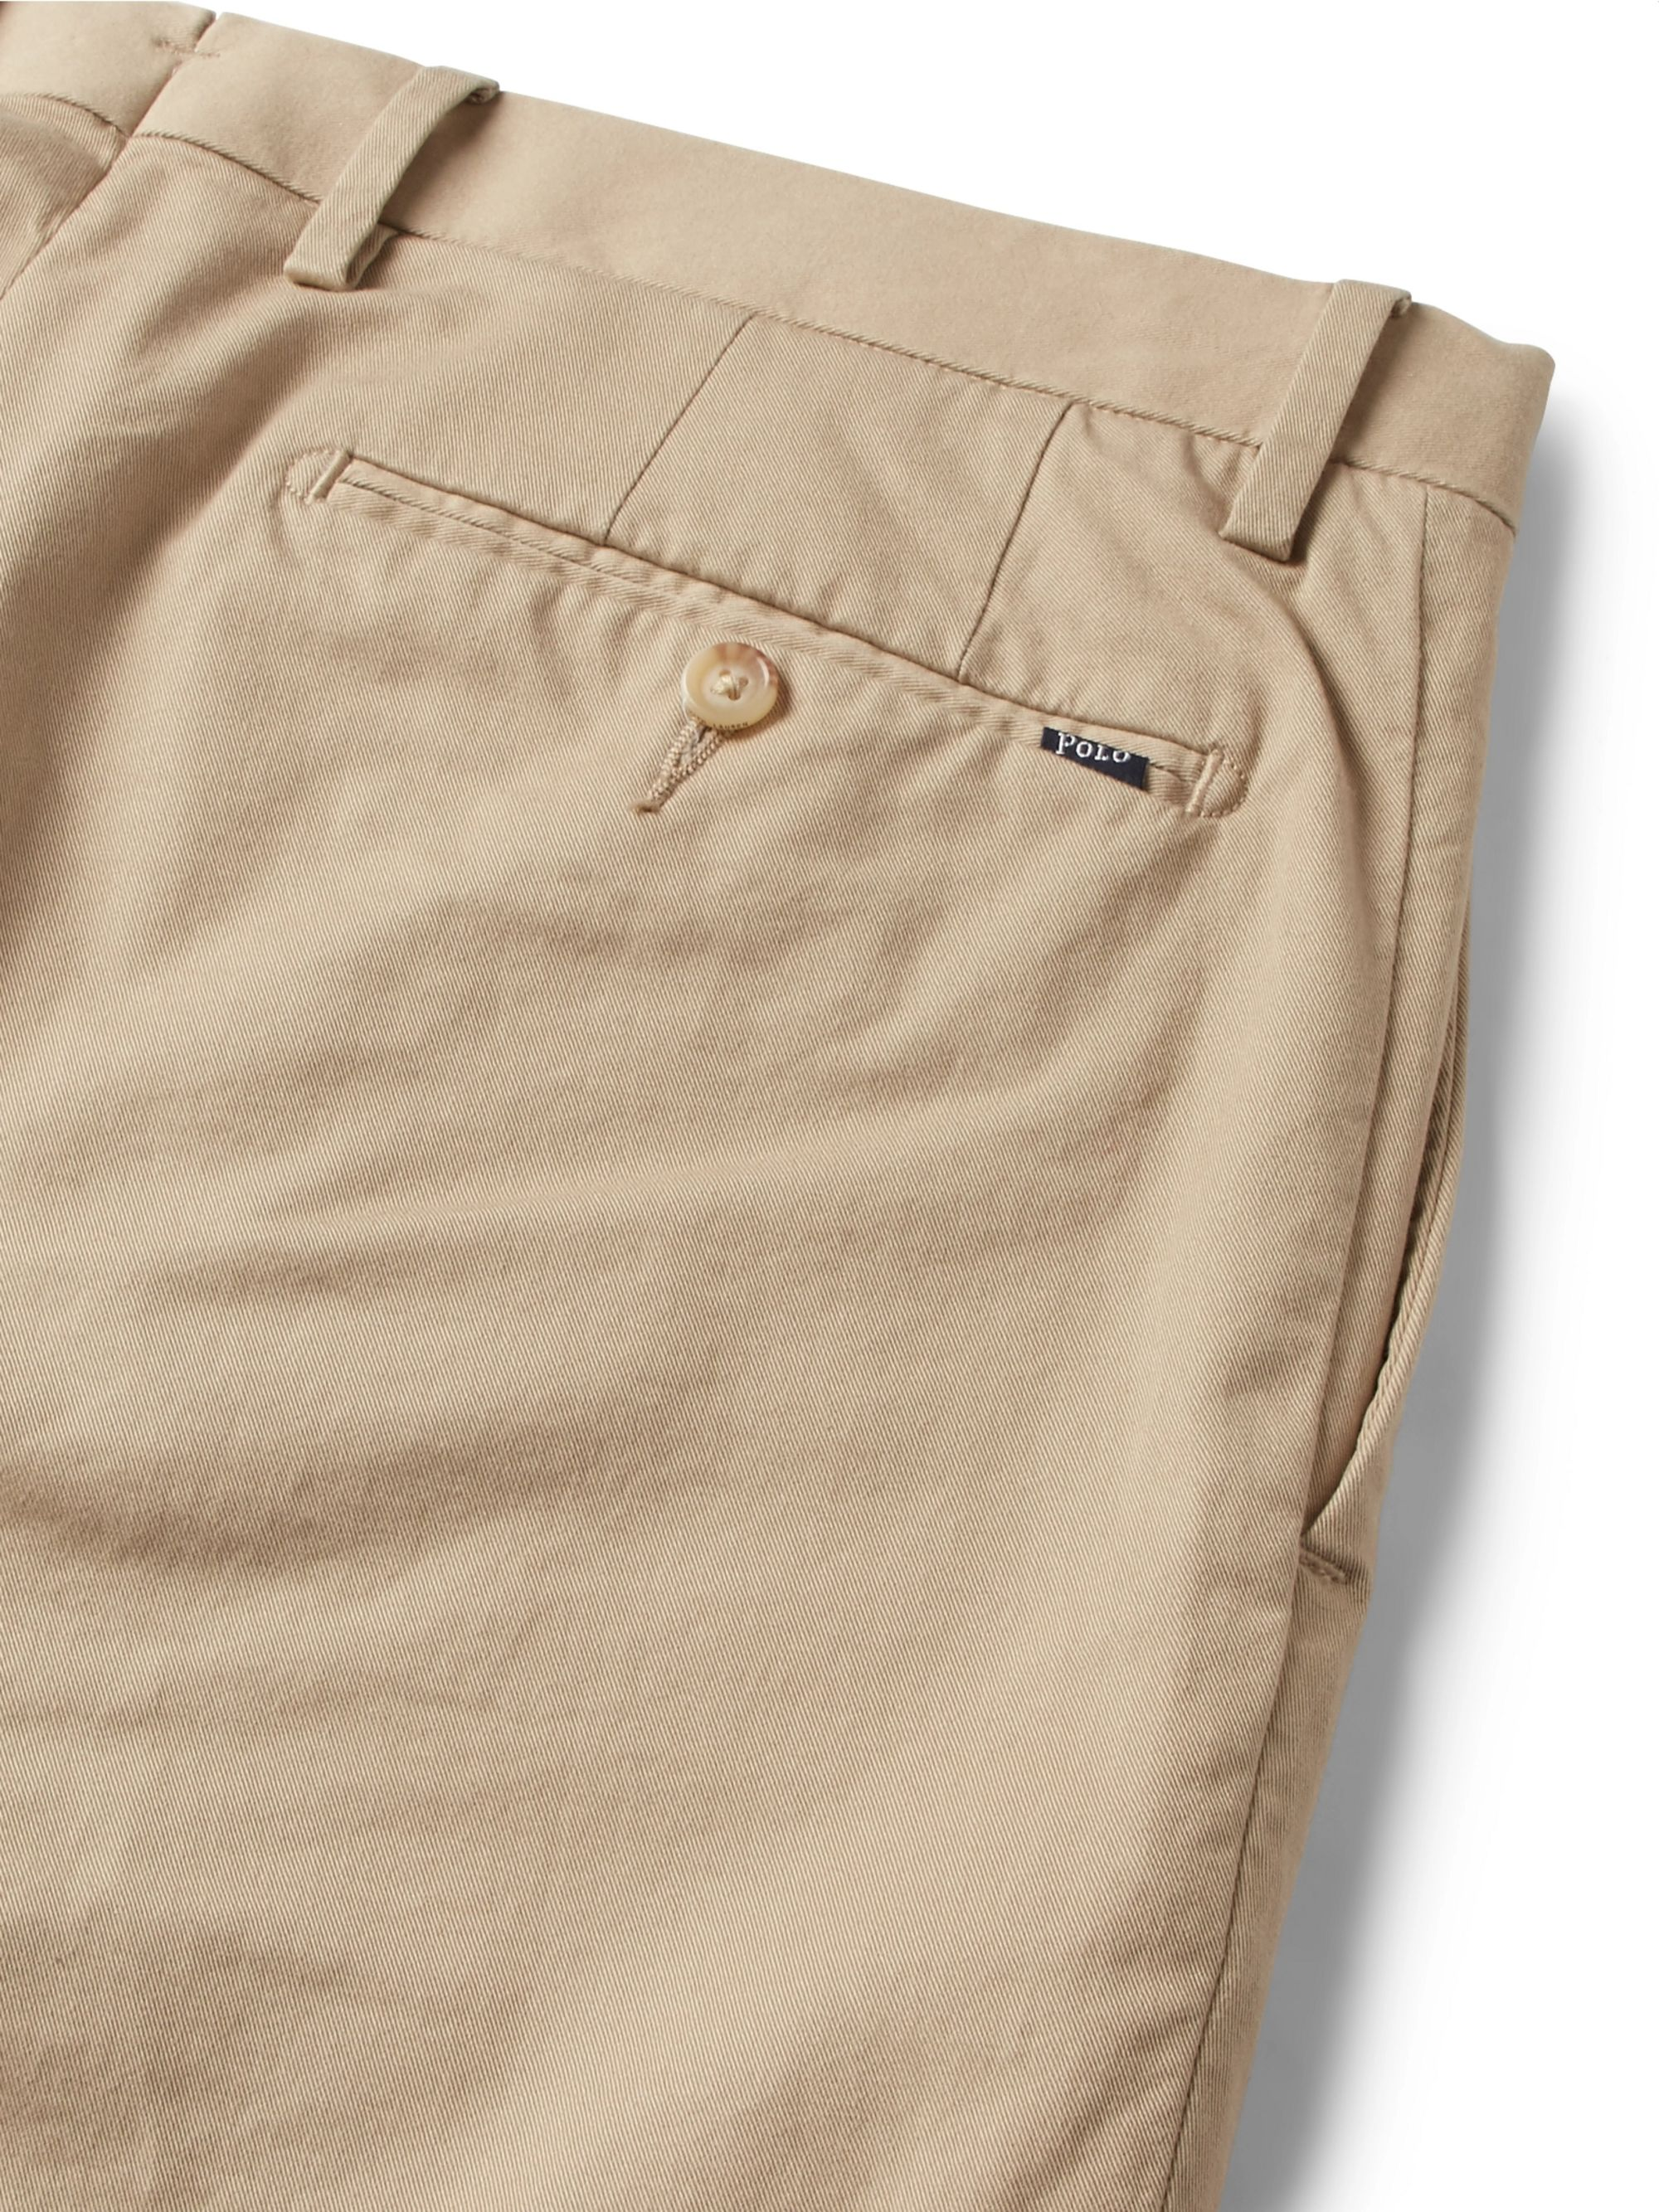 Polo Ralph Lauren Slim-Fit Stretch-Cotton Twill Chinos